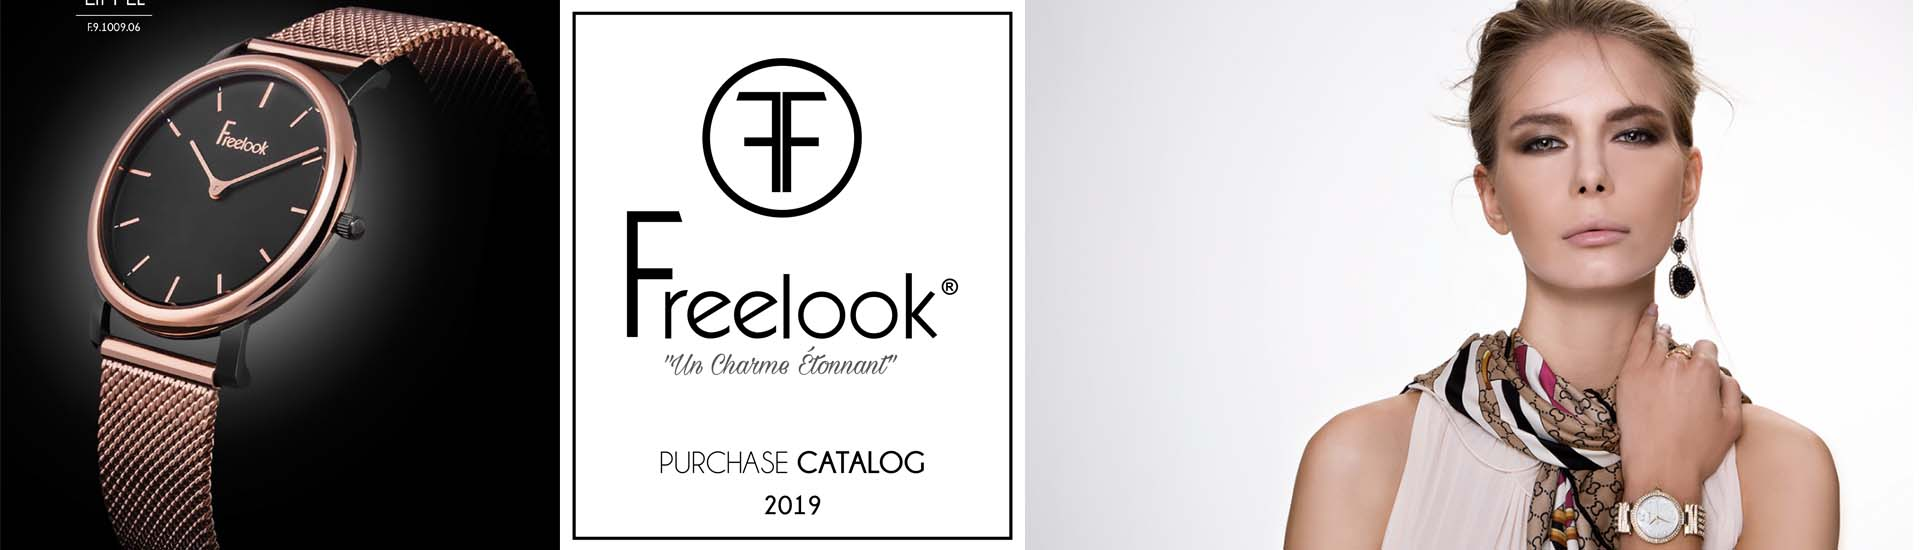 catalogue-freelook-first-page.jpg